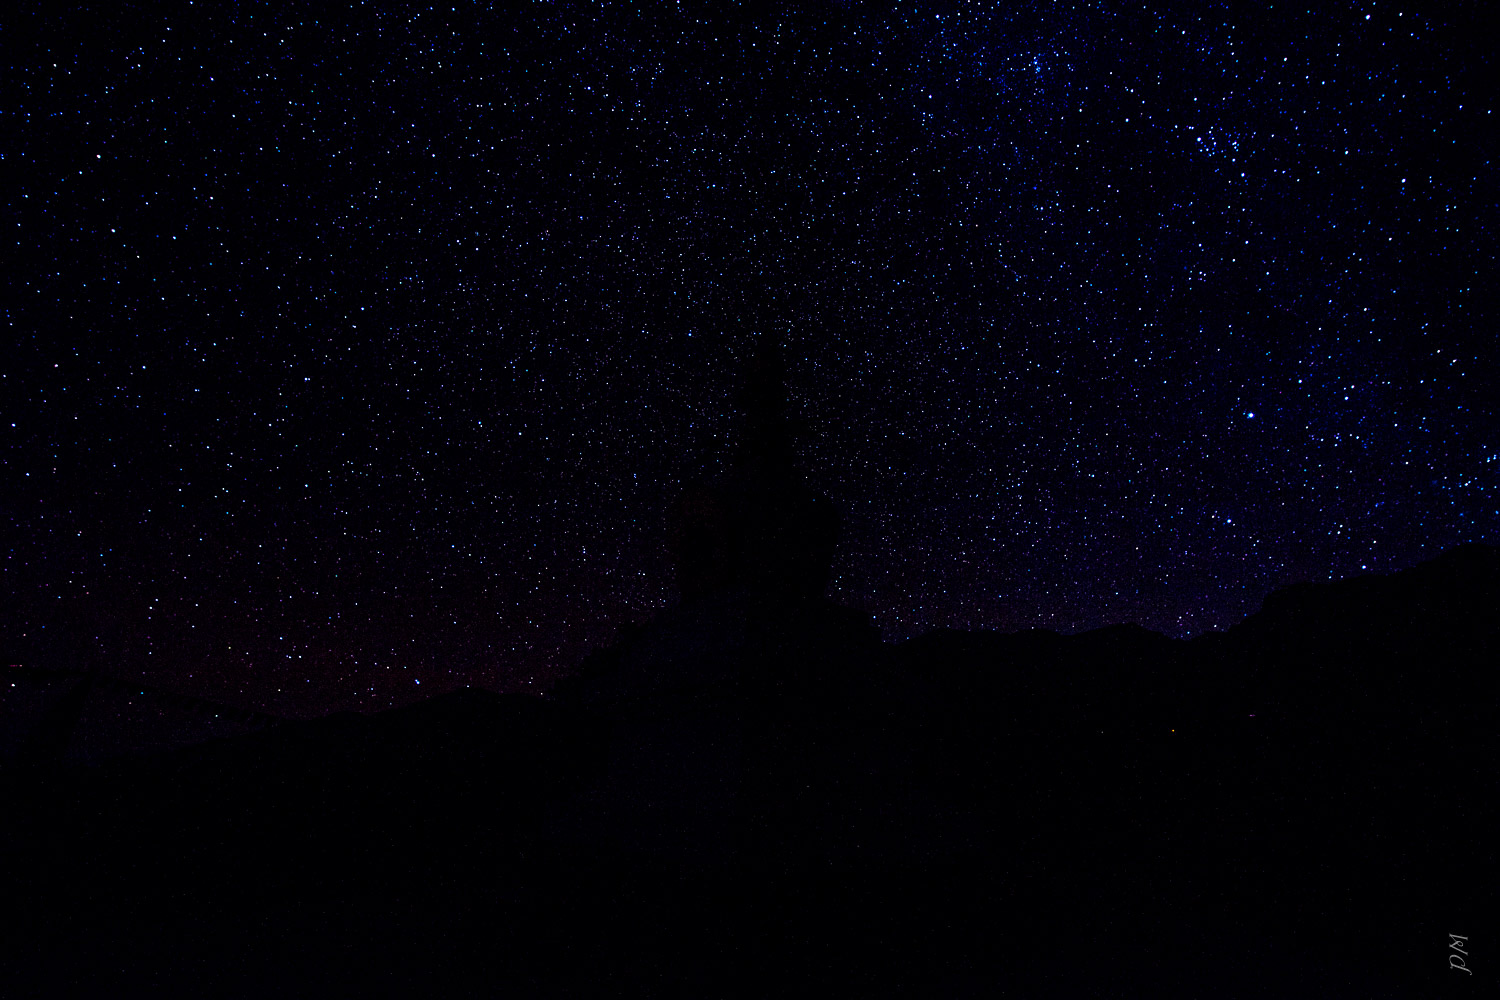 Single shot of just stars. Very bland by itself.